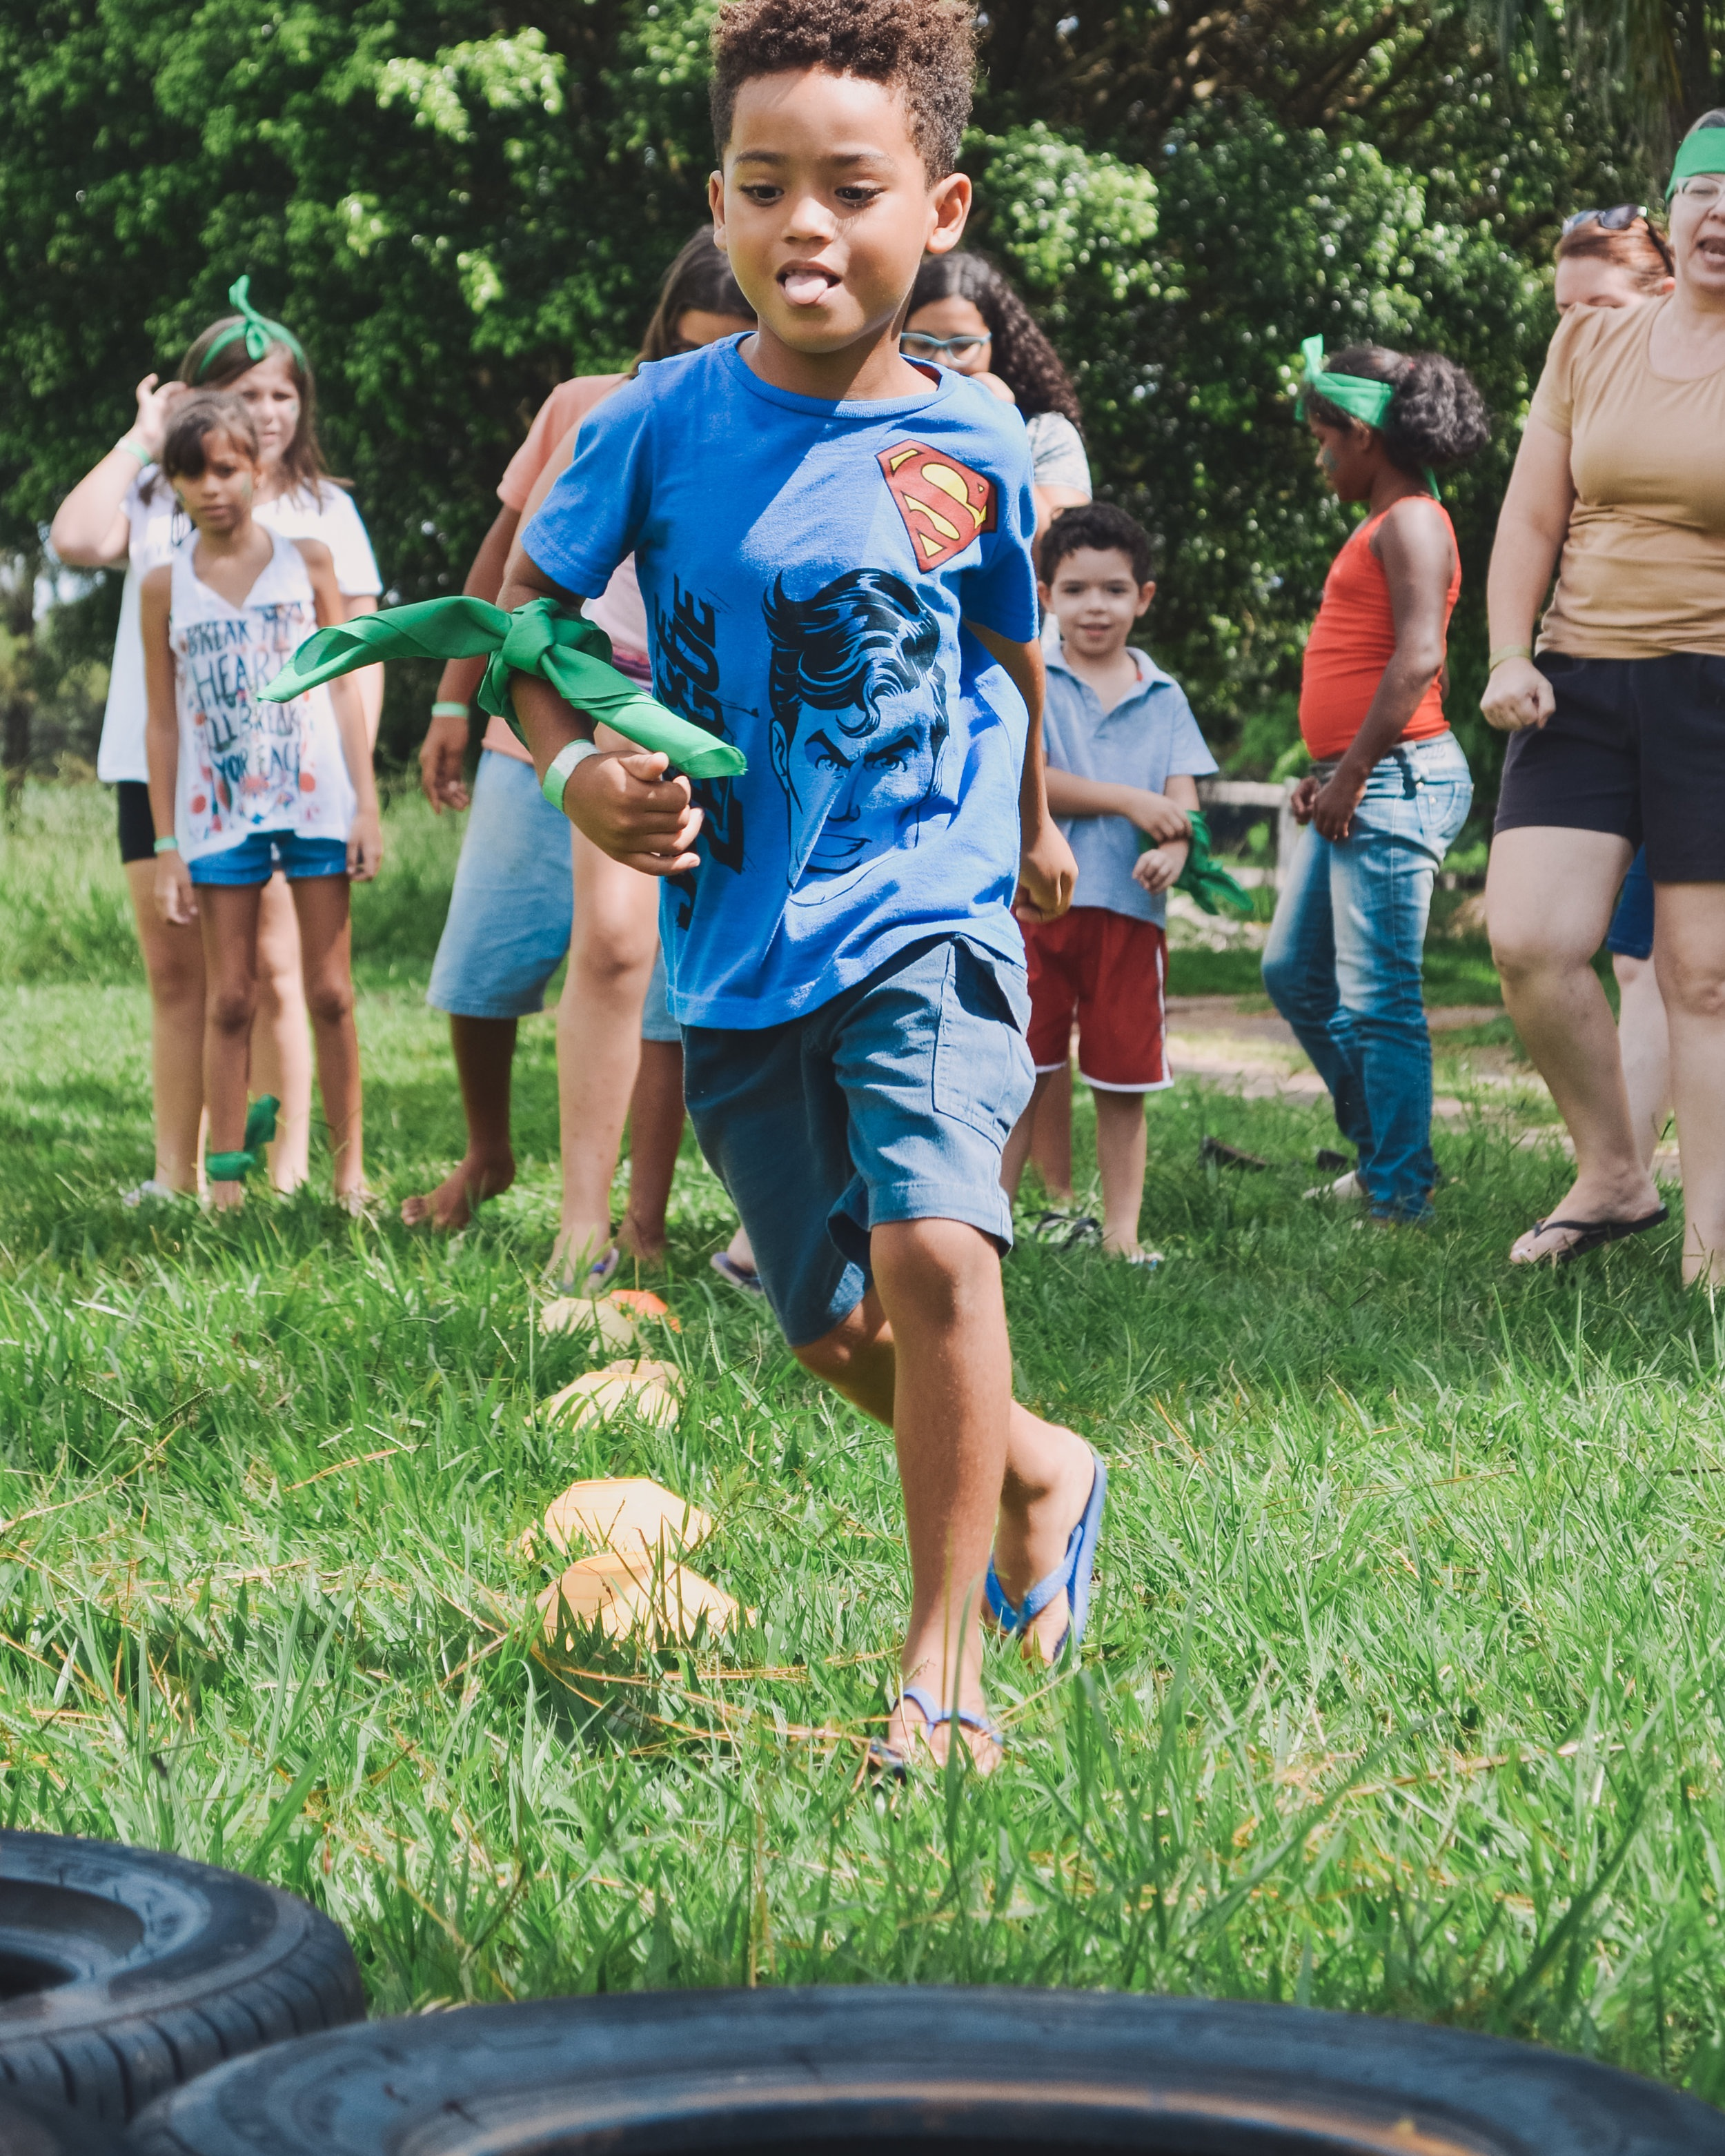 August - Christian Science camps are in full swing where children learn to lean on God to grow in grace and reach outside their limits. Lots of opportunities for benevolence.